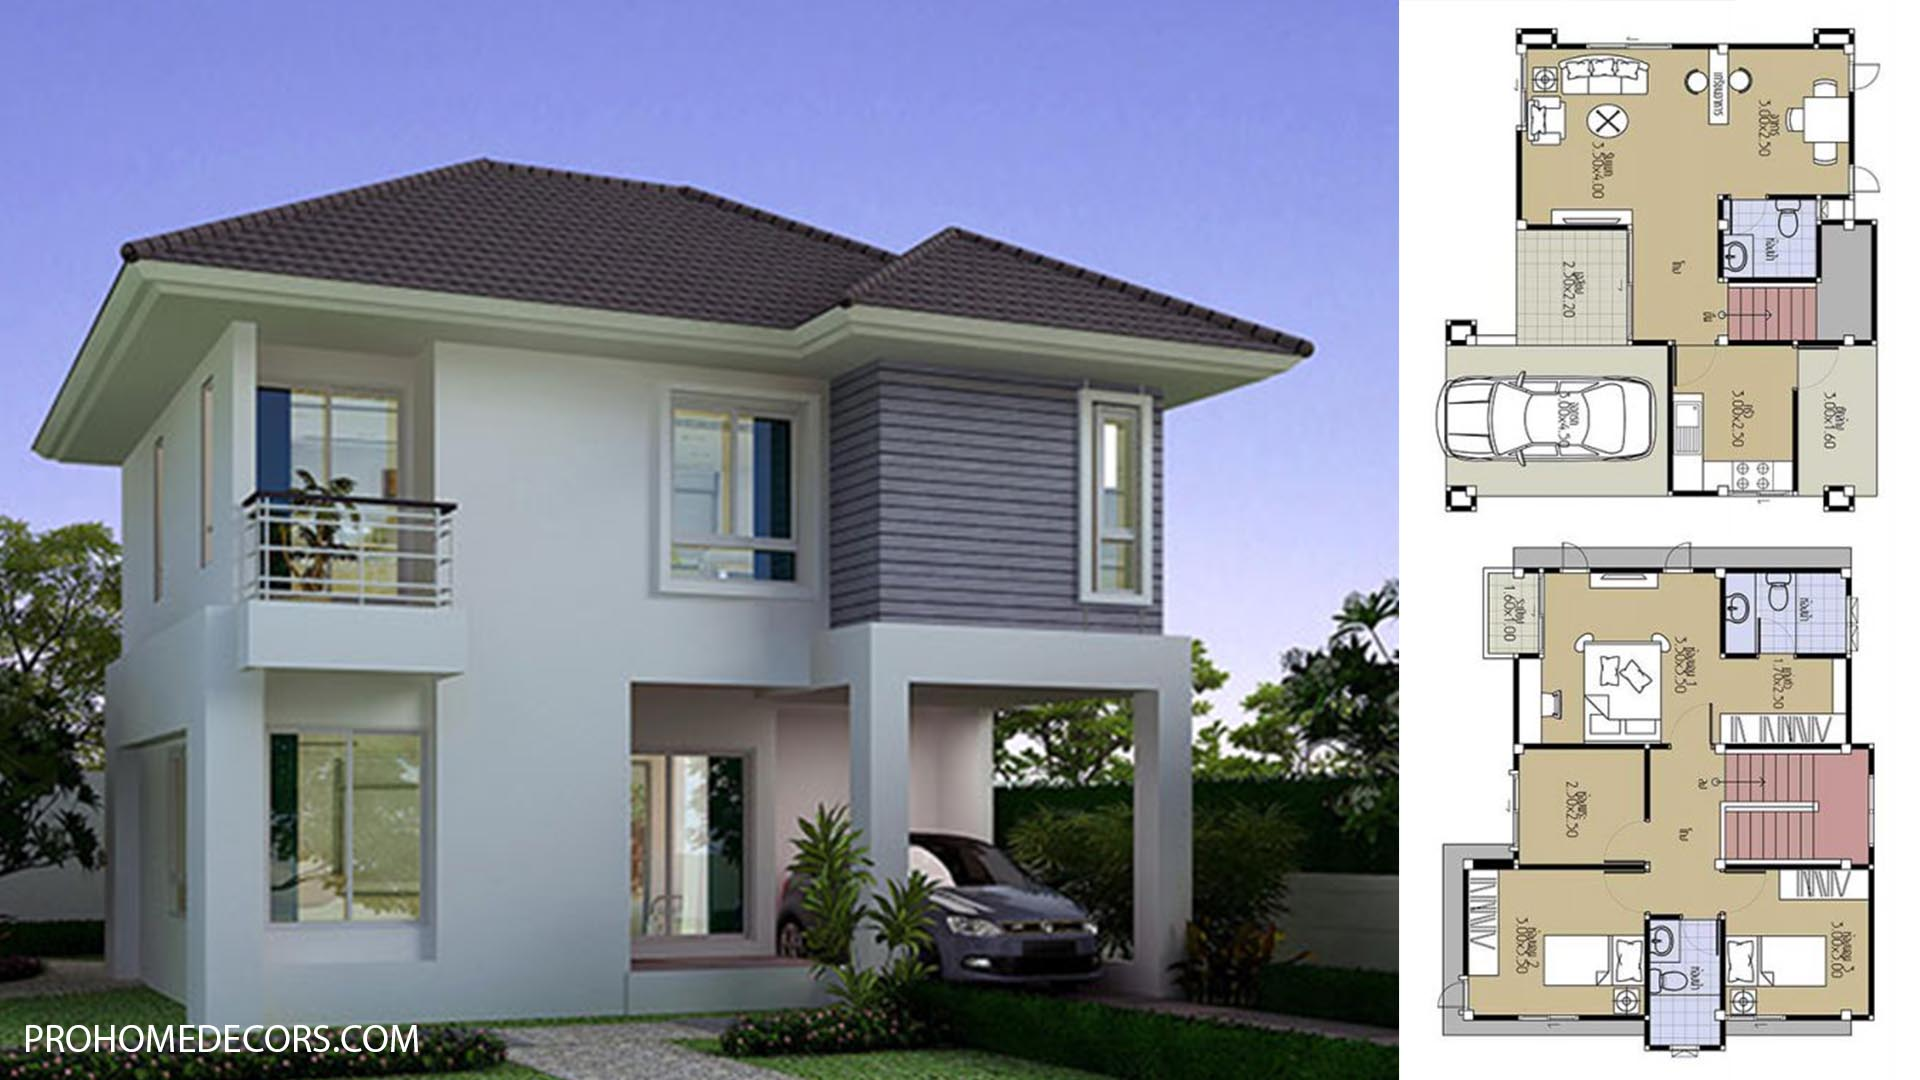 House Plans 8.8×7.5 with 3 Beds